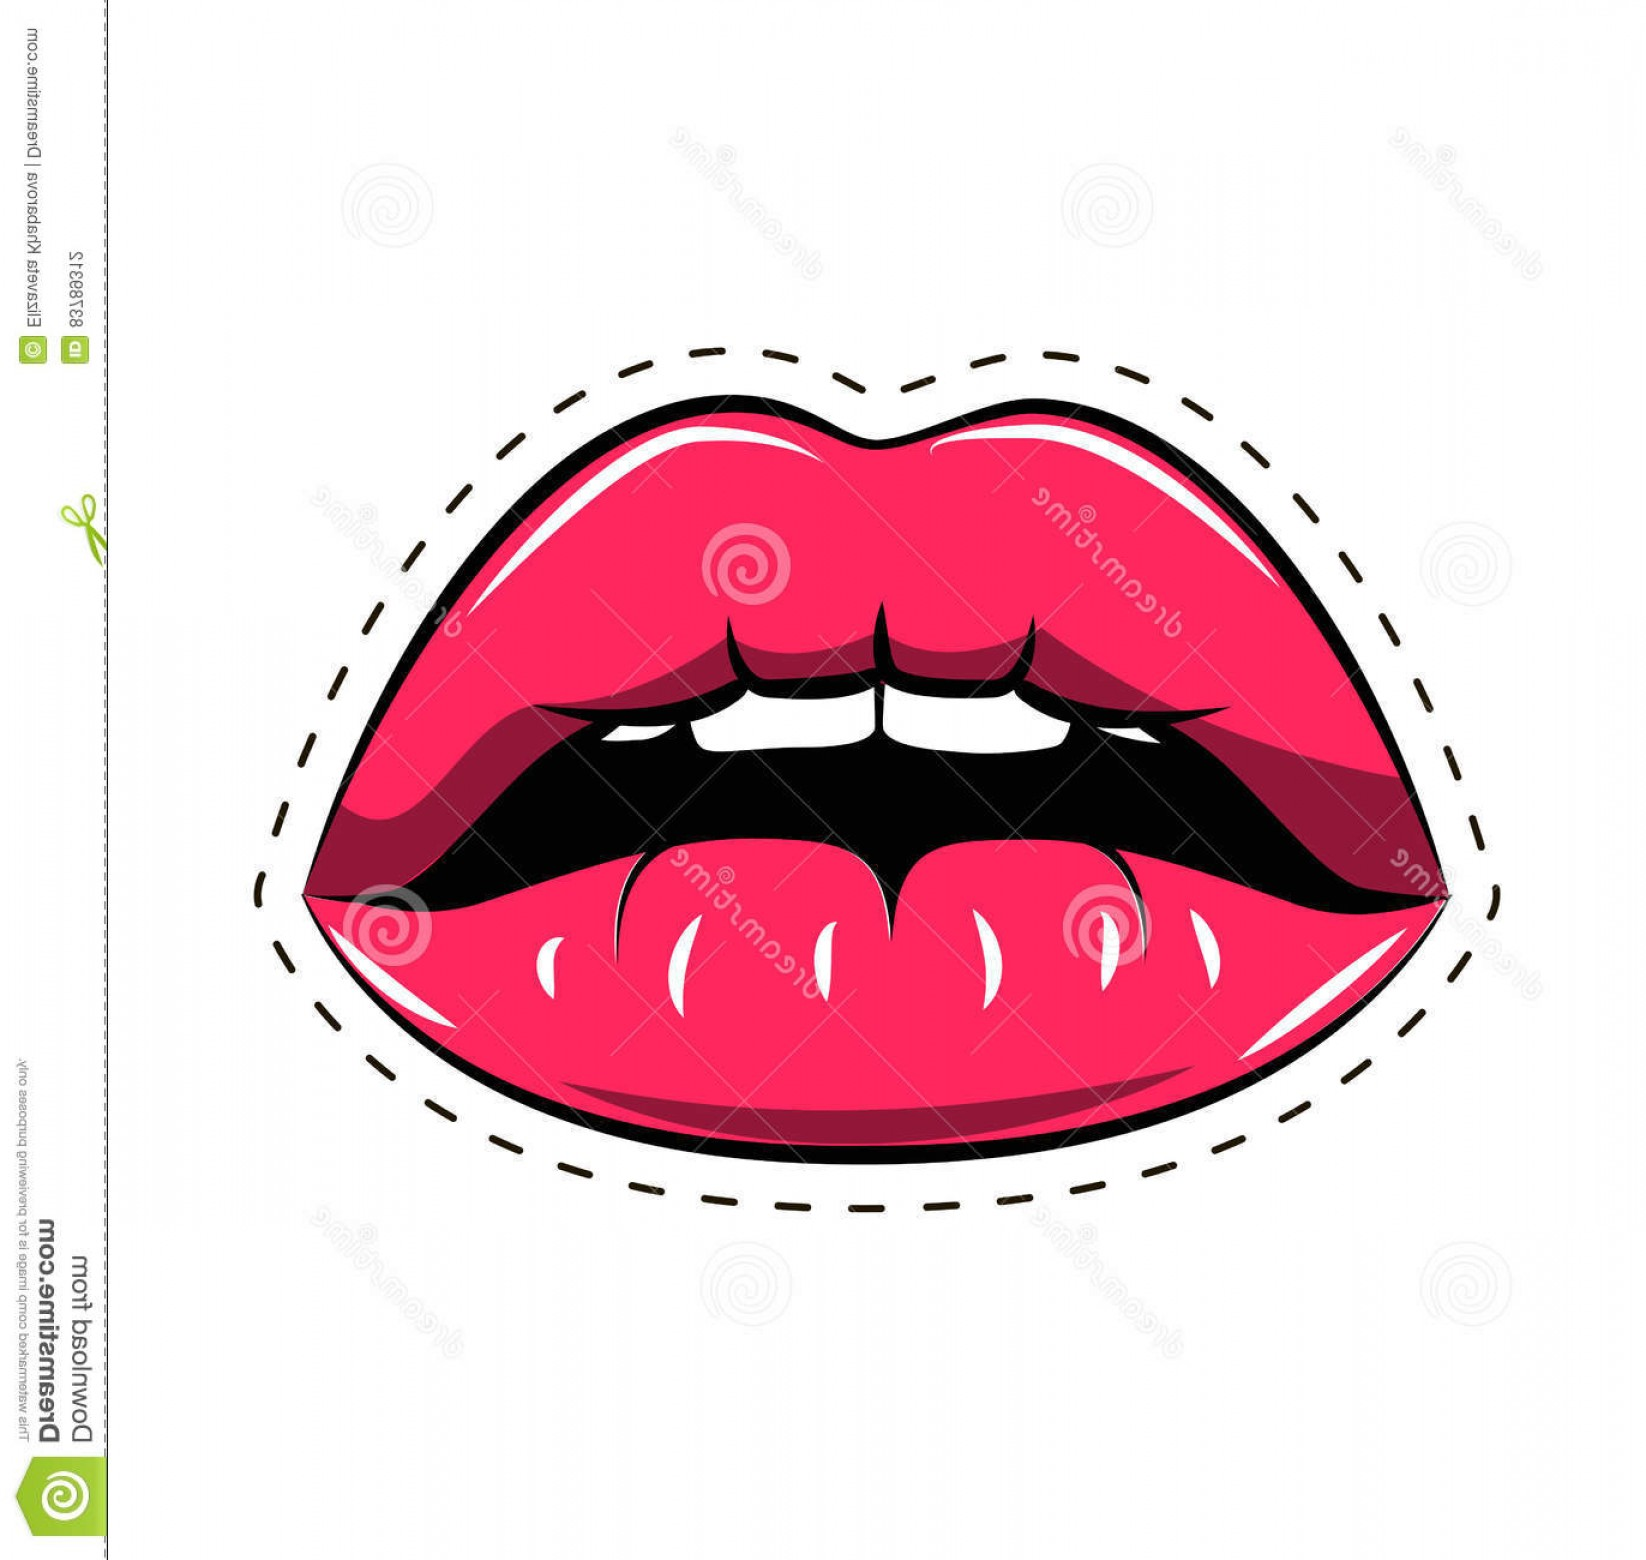 Vector Female Lips: Cartoon Smile Mouth Lips Teeth Tongue Vector Illustration Isolated White Background